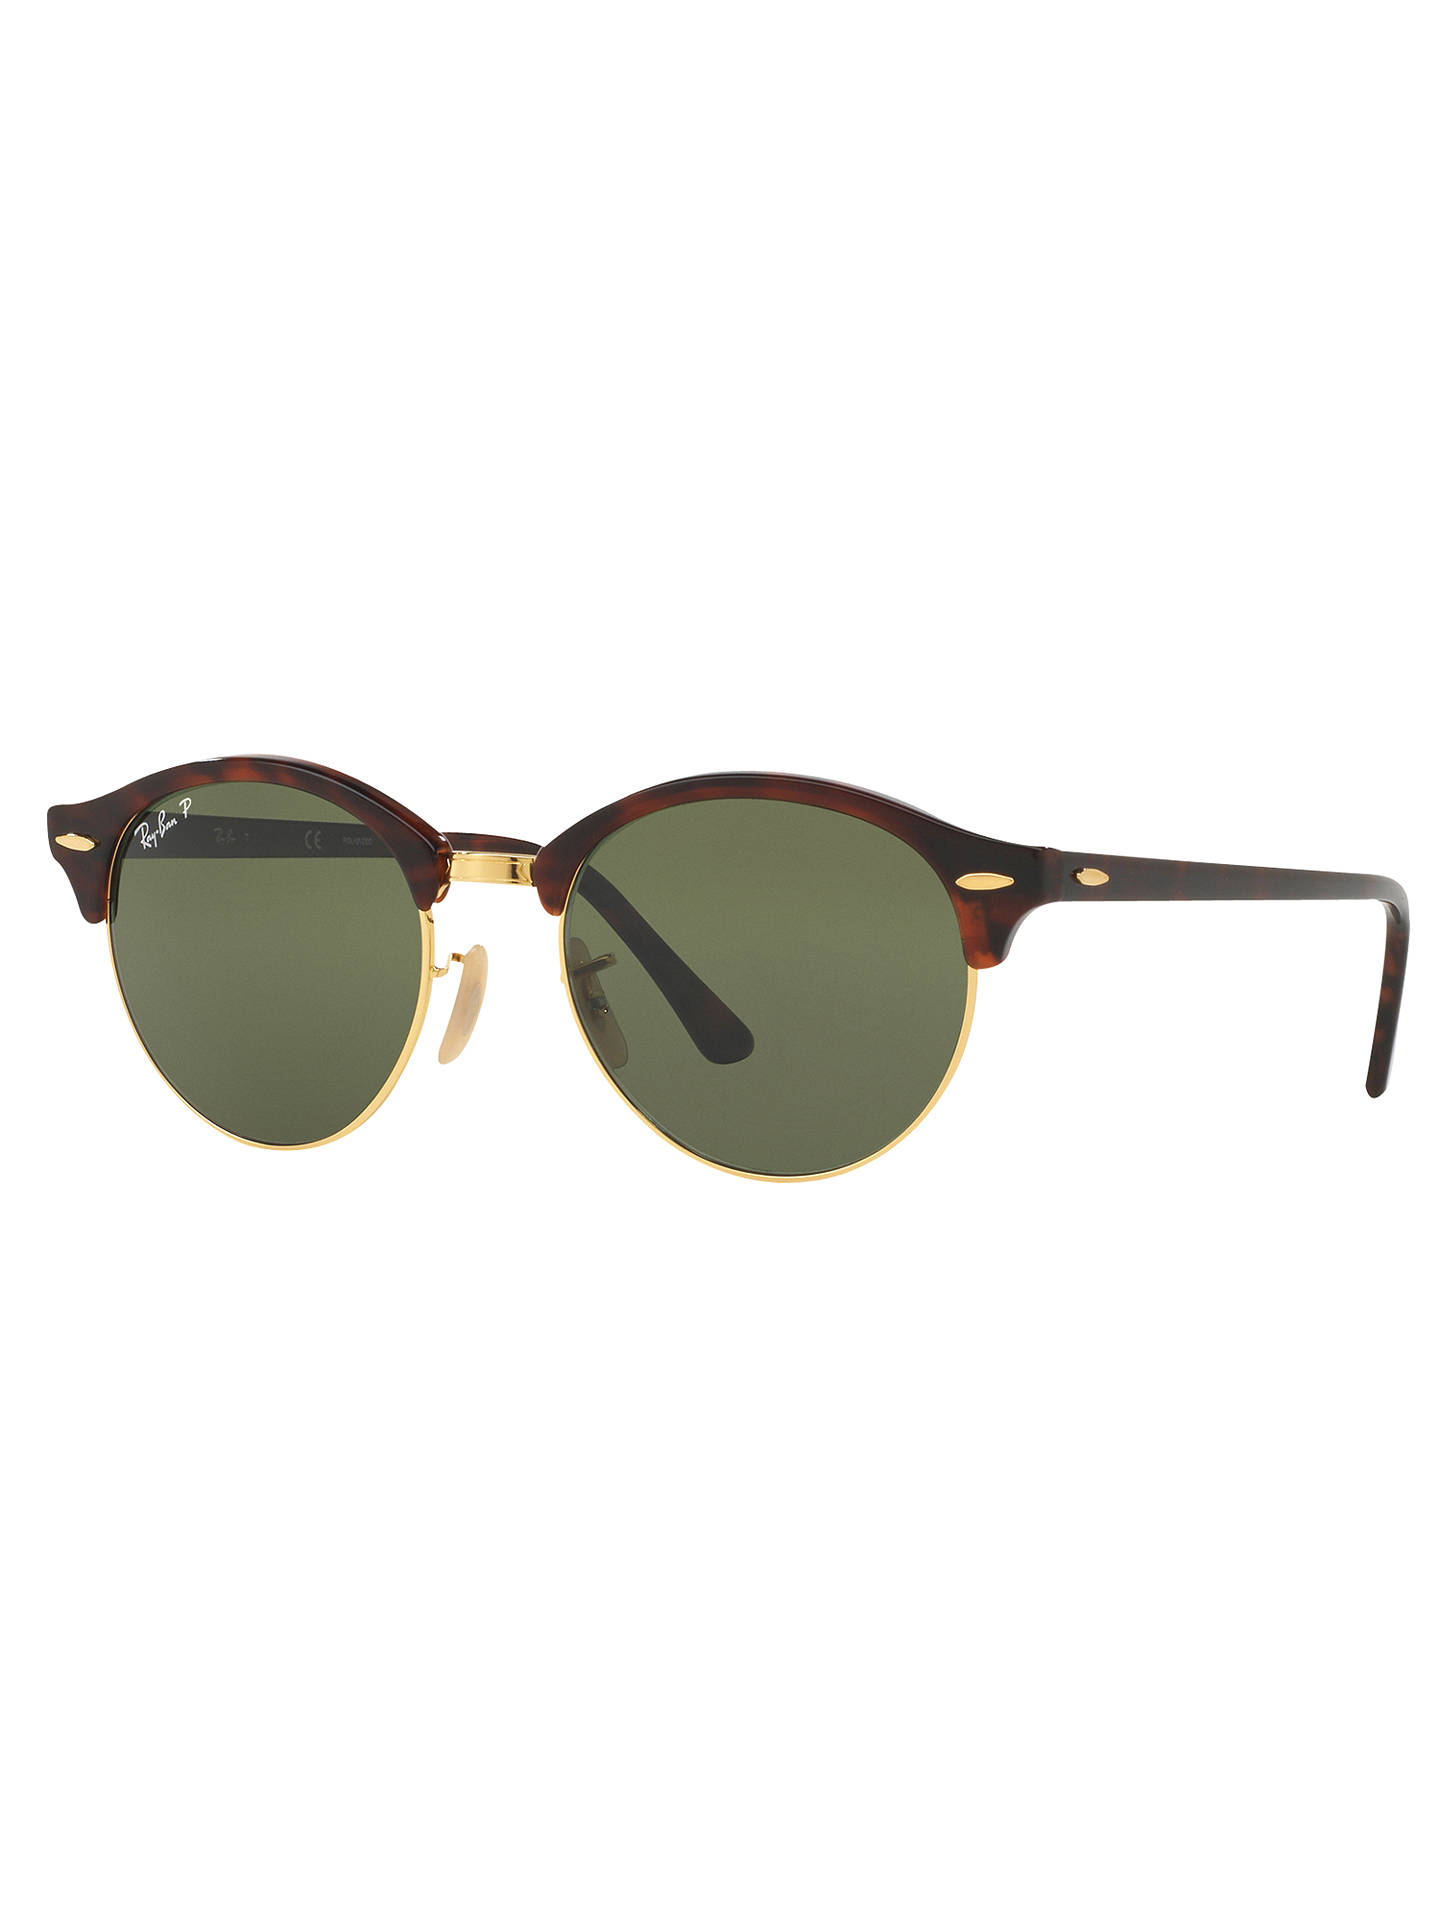 8887f5f5c43 Ray-Ban RB4246 Clubround Polarised Round Sunglasses at John Lewis ...